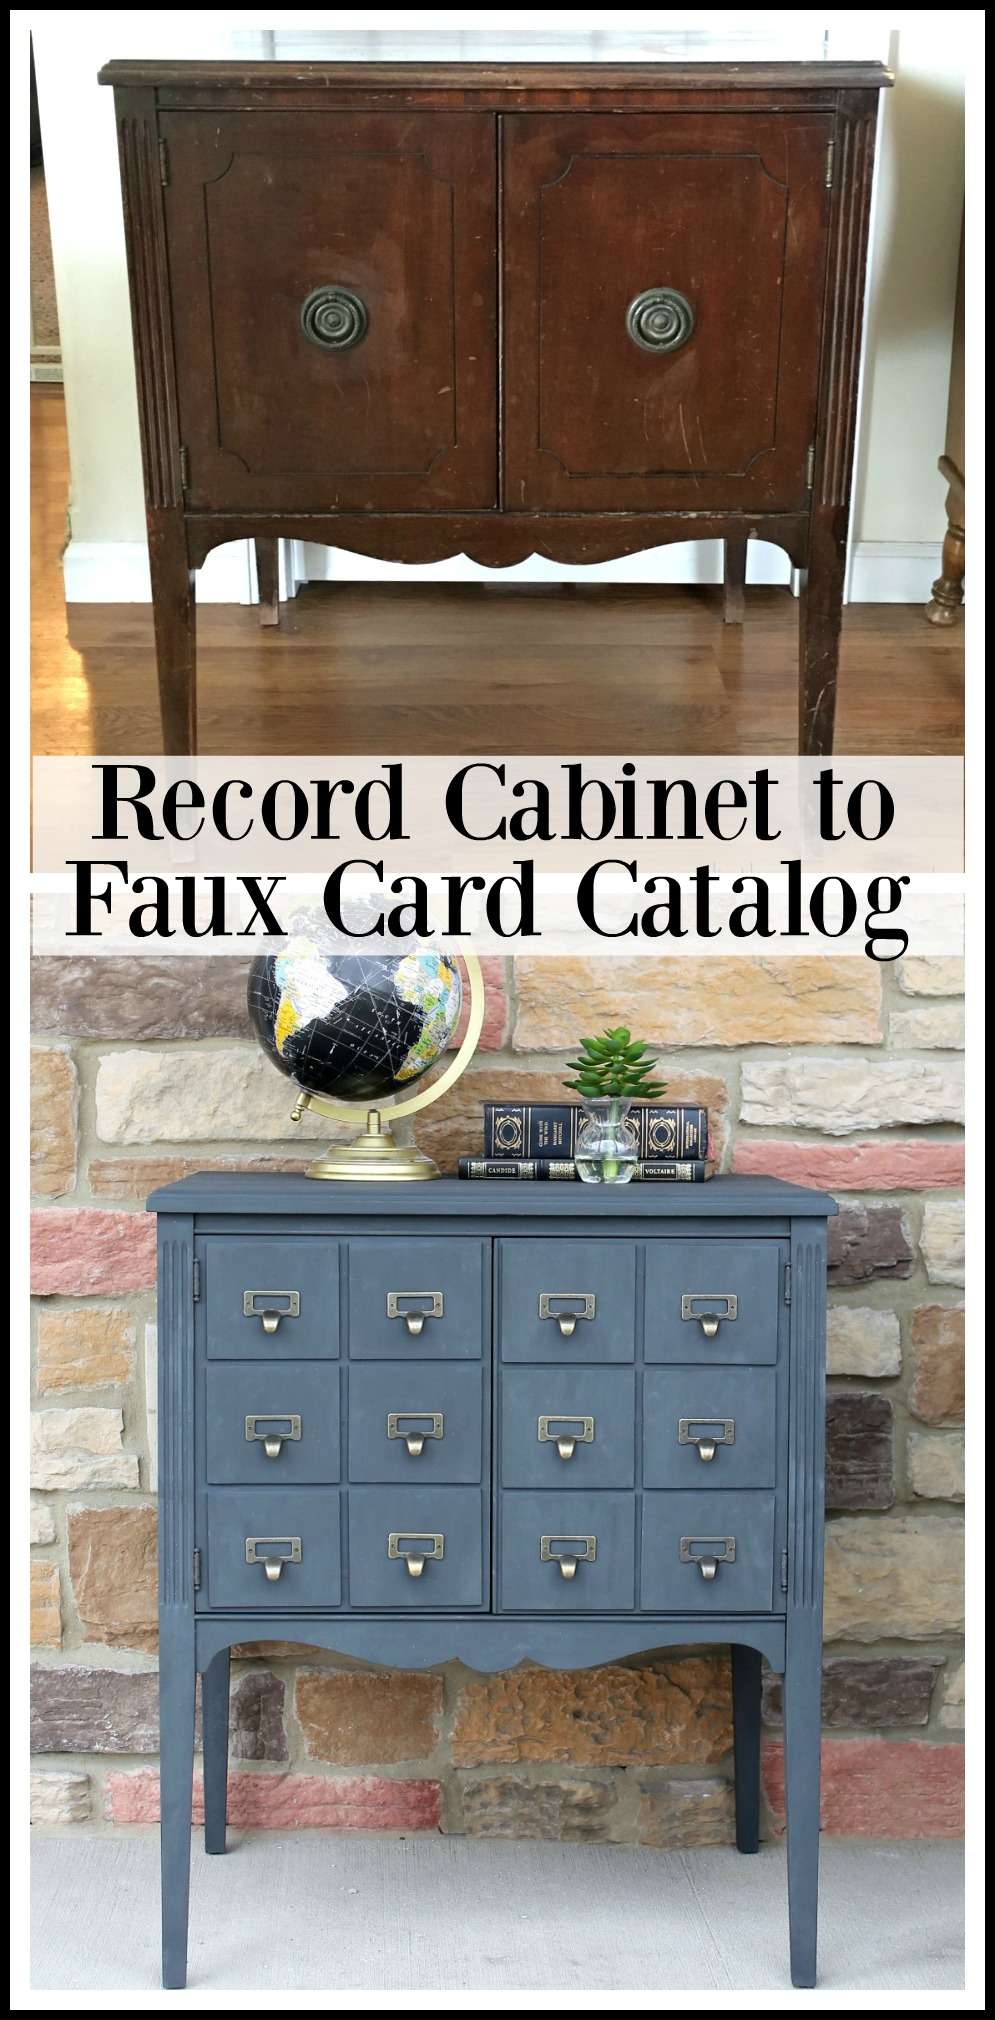 Record Cabinet to Faux Card Catalog - Girl in the Garage